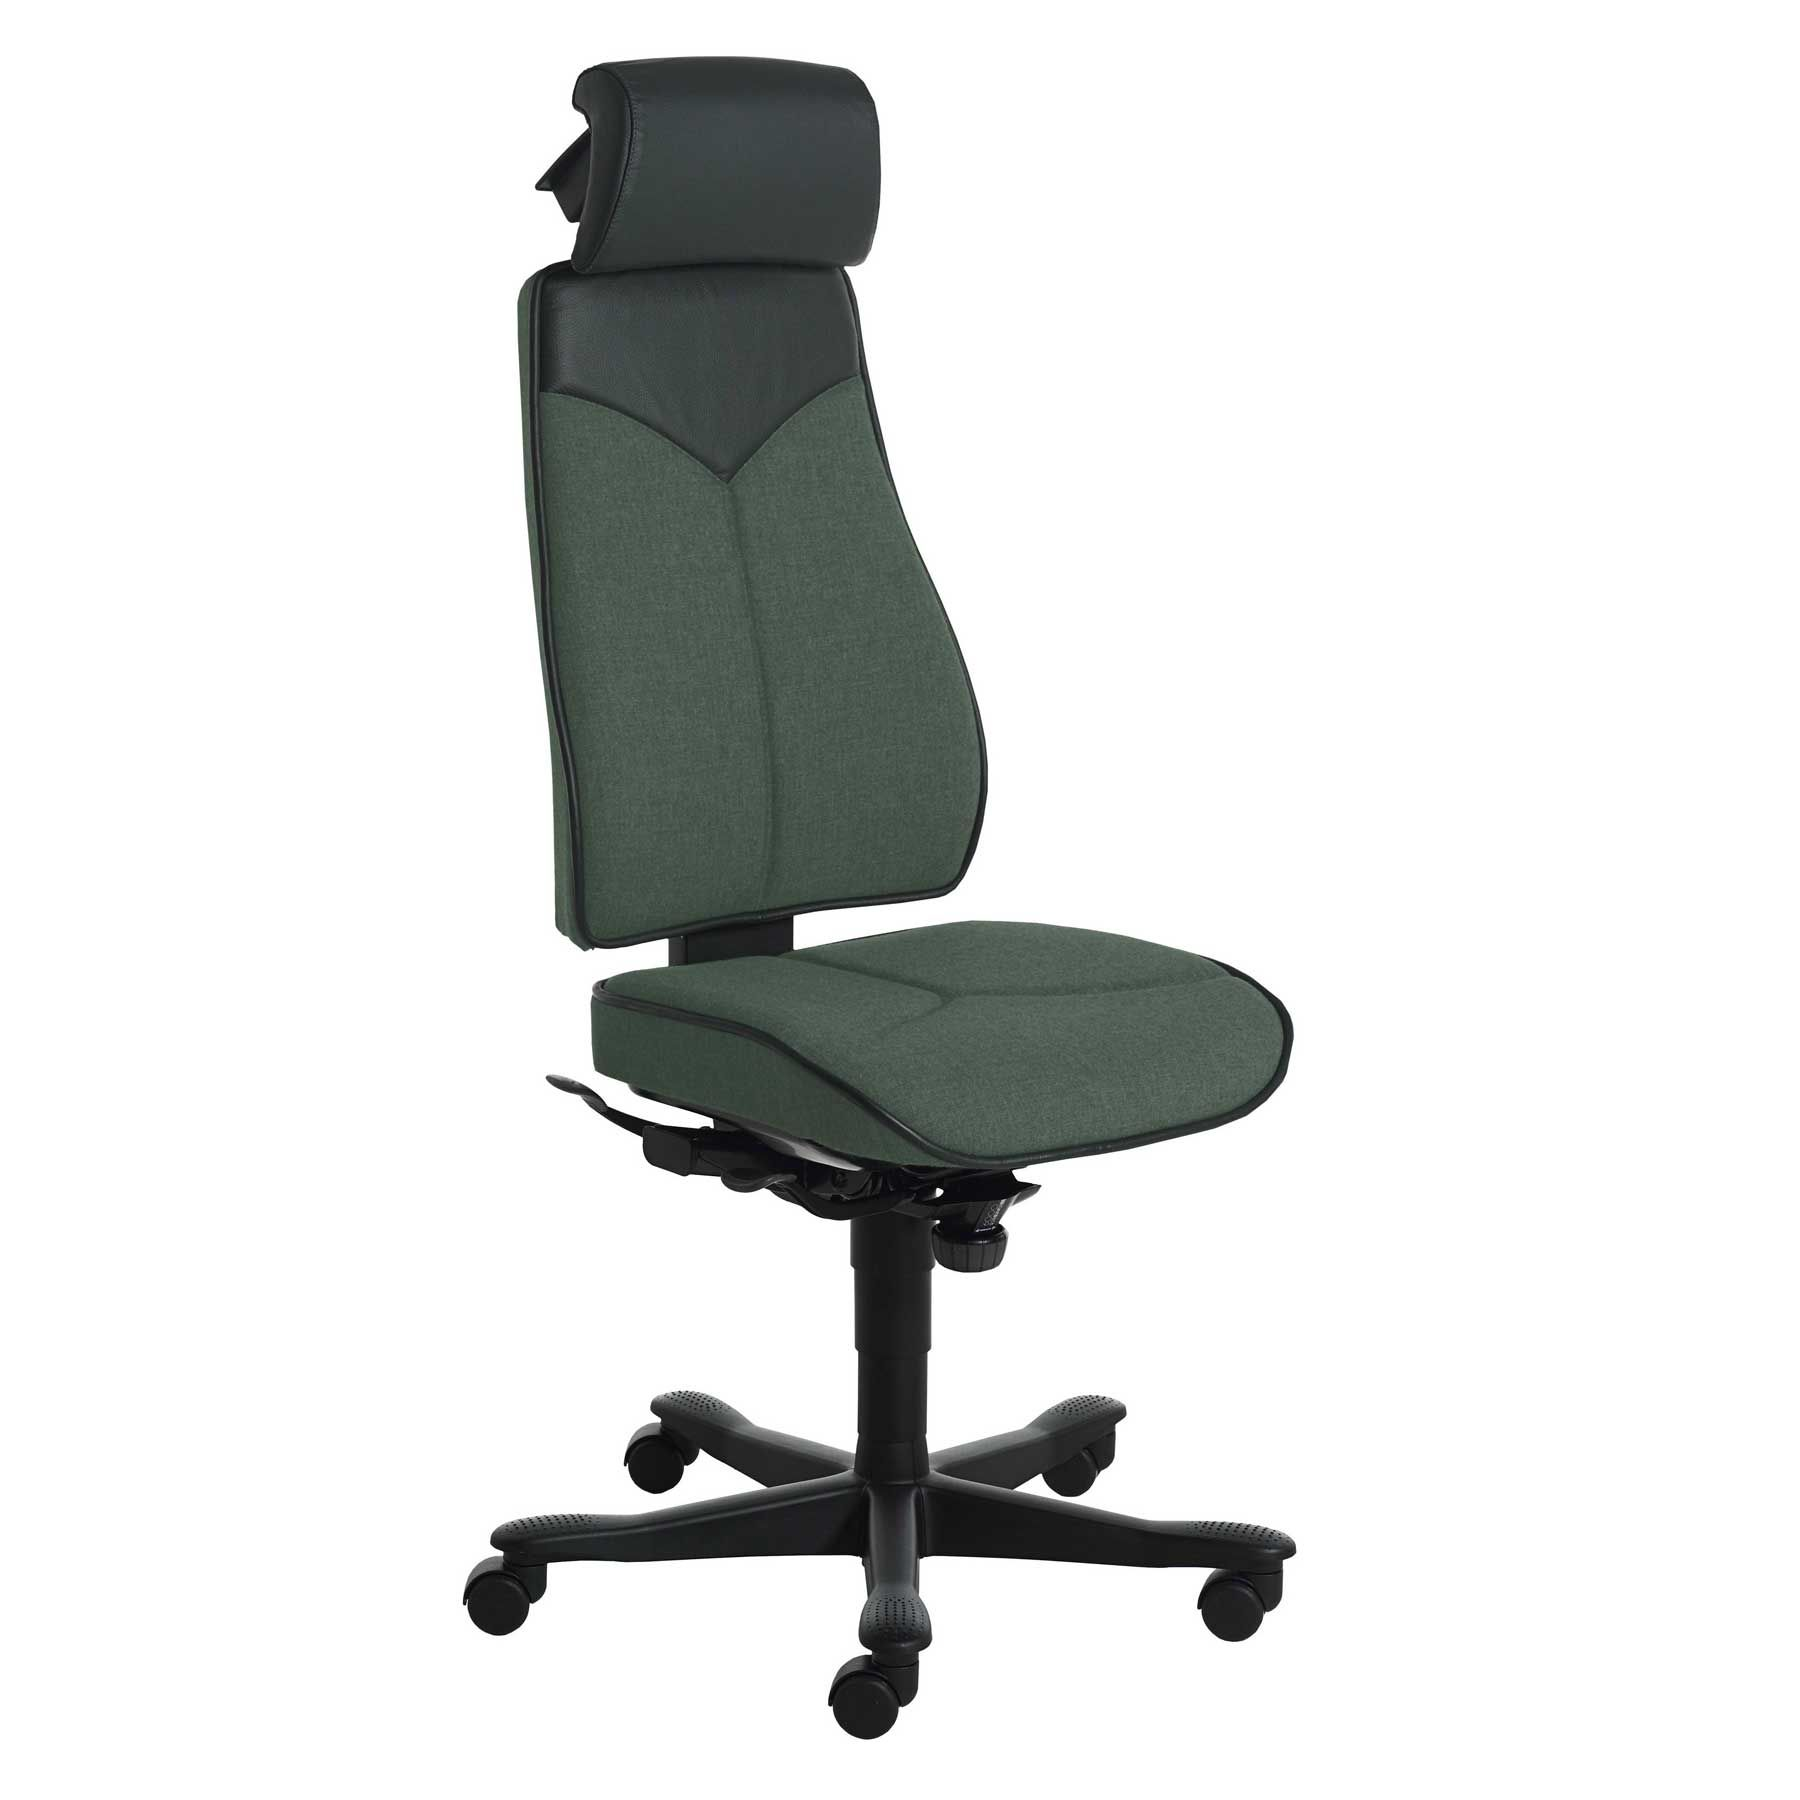 Awesome Armless Tall And Big Office Chair With Neck Pillow Office Creativecarmelina Interior Chair Design Creativecarmelinacom